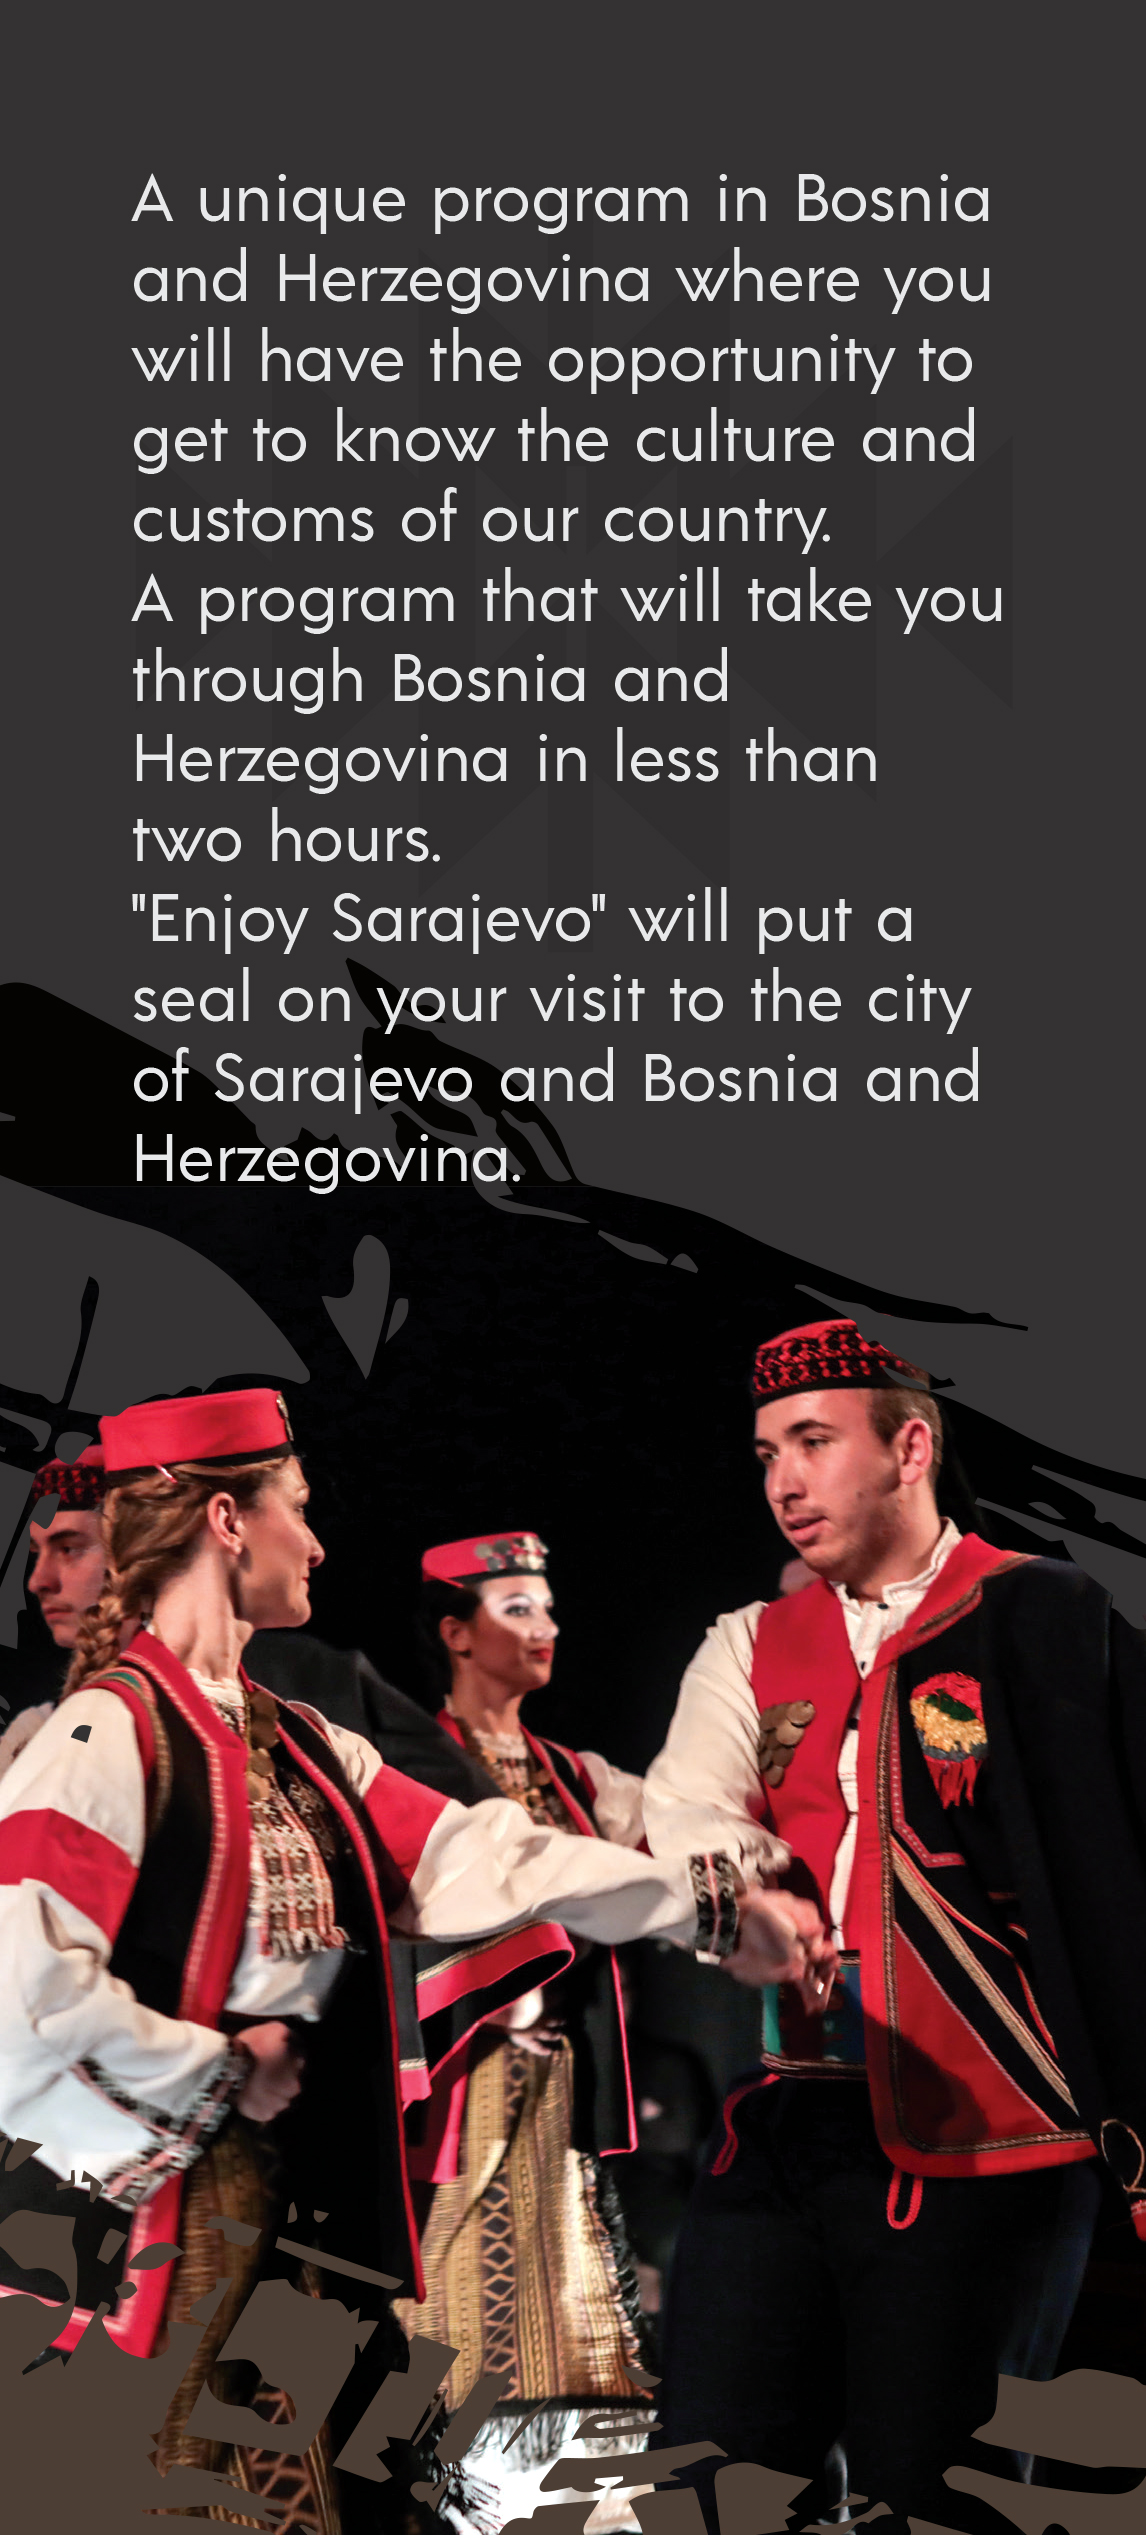 BEST EVENT IN SARAJEVO - Book your place on email booking@notahoteli.com